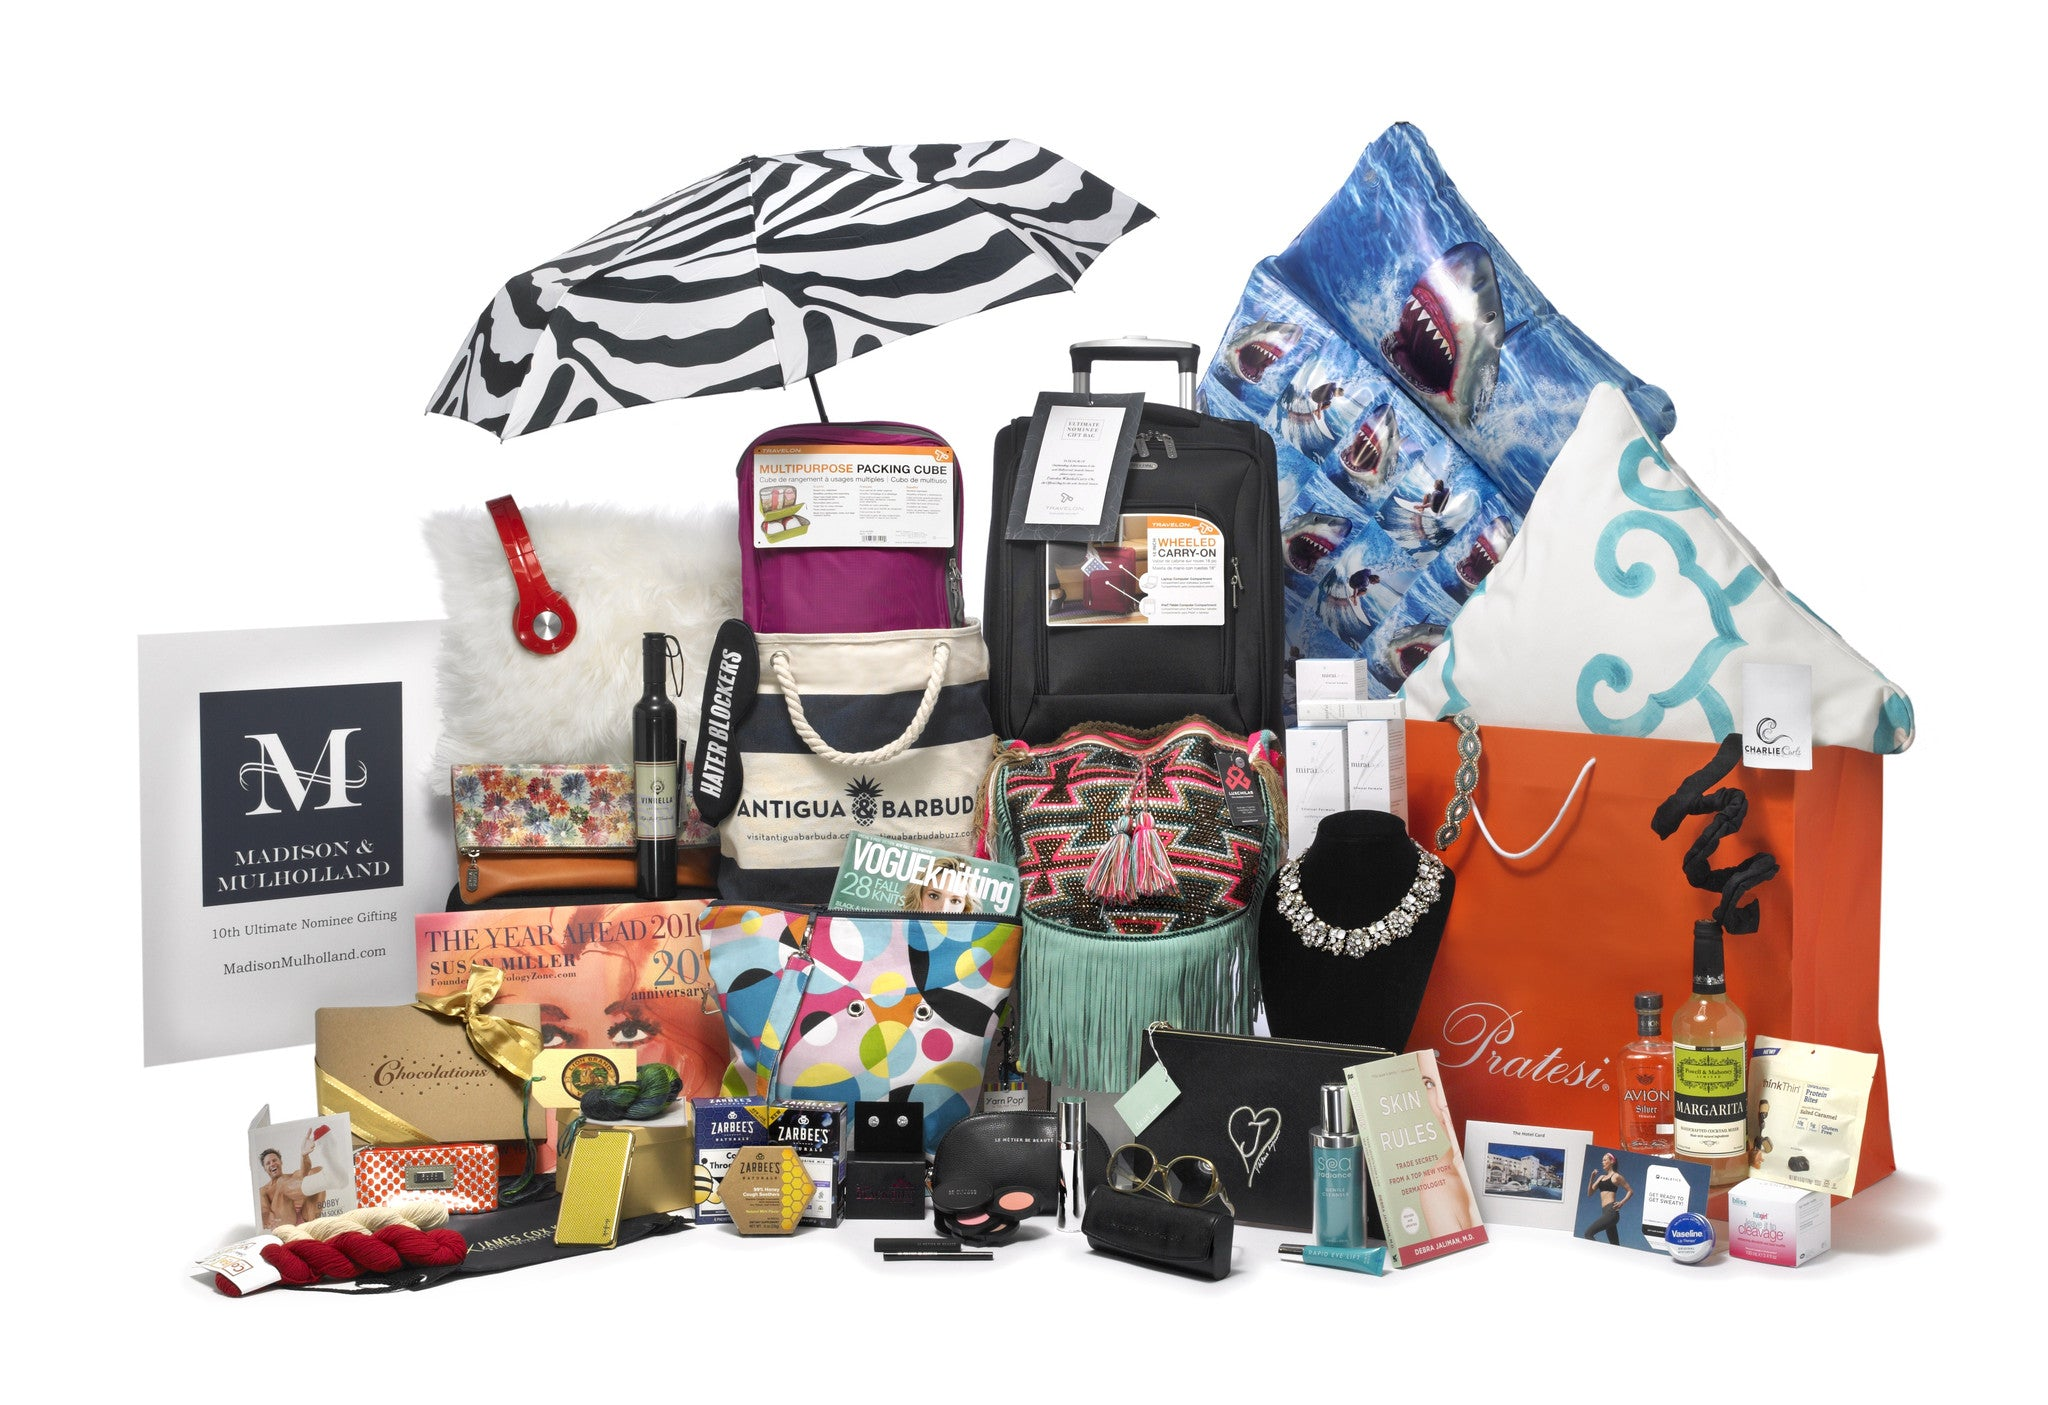 2016 Awards Season Gift Bag is ready! Win!